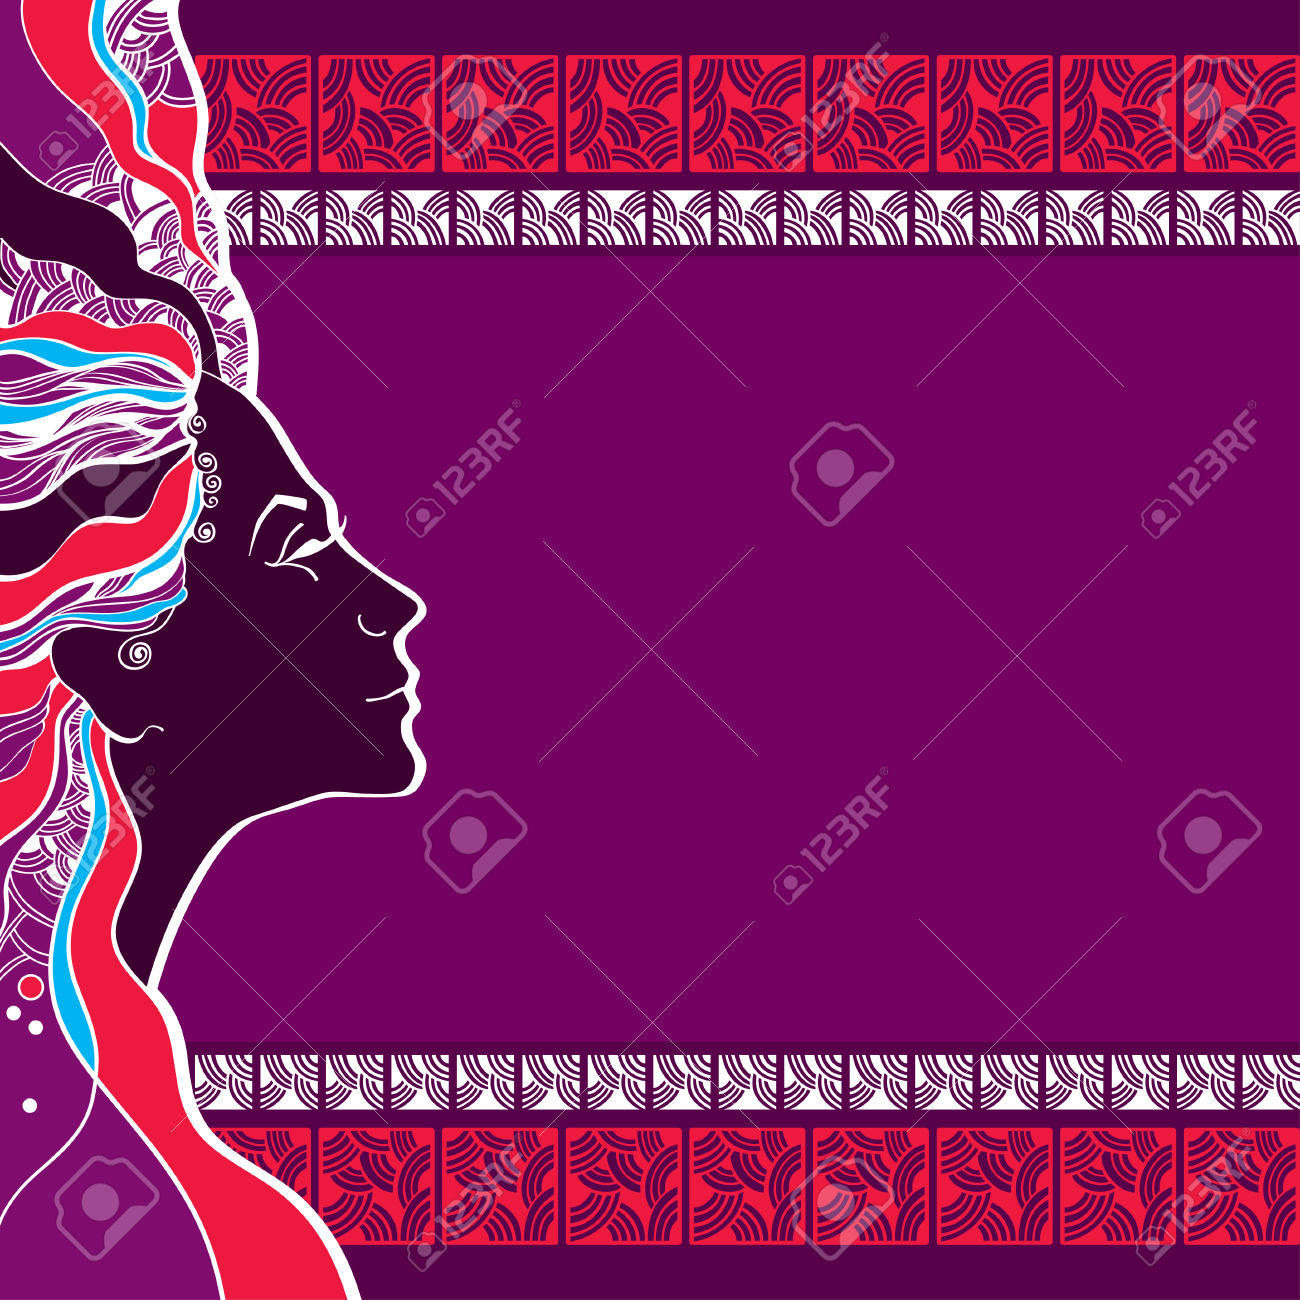 Beautiful Lady Silhouette On A Mosaic Background Royalty Free.